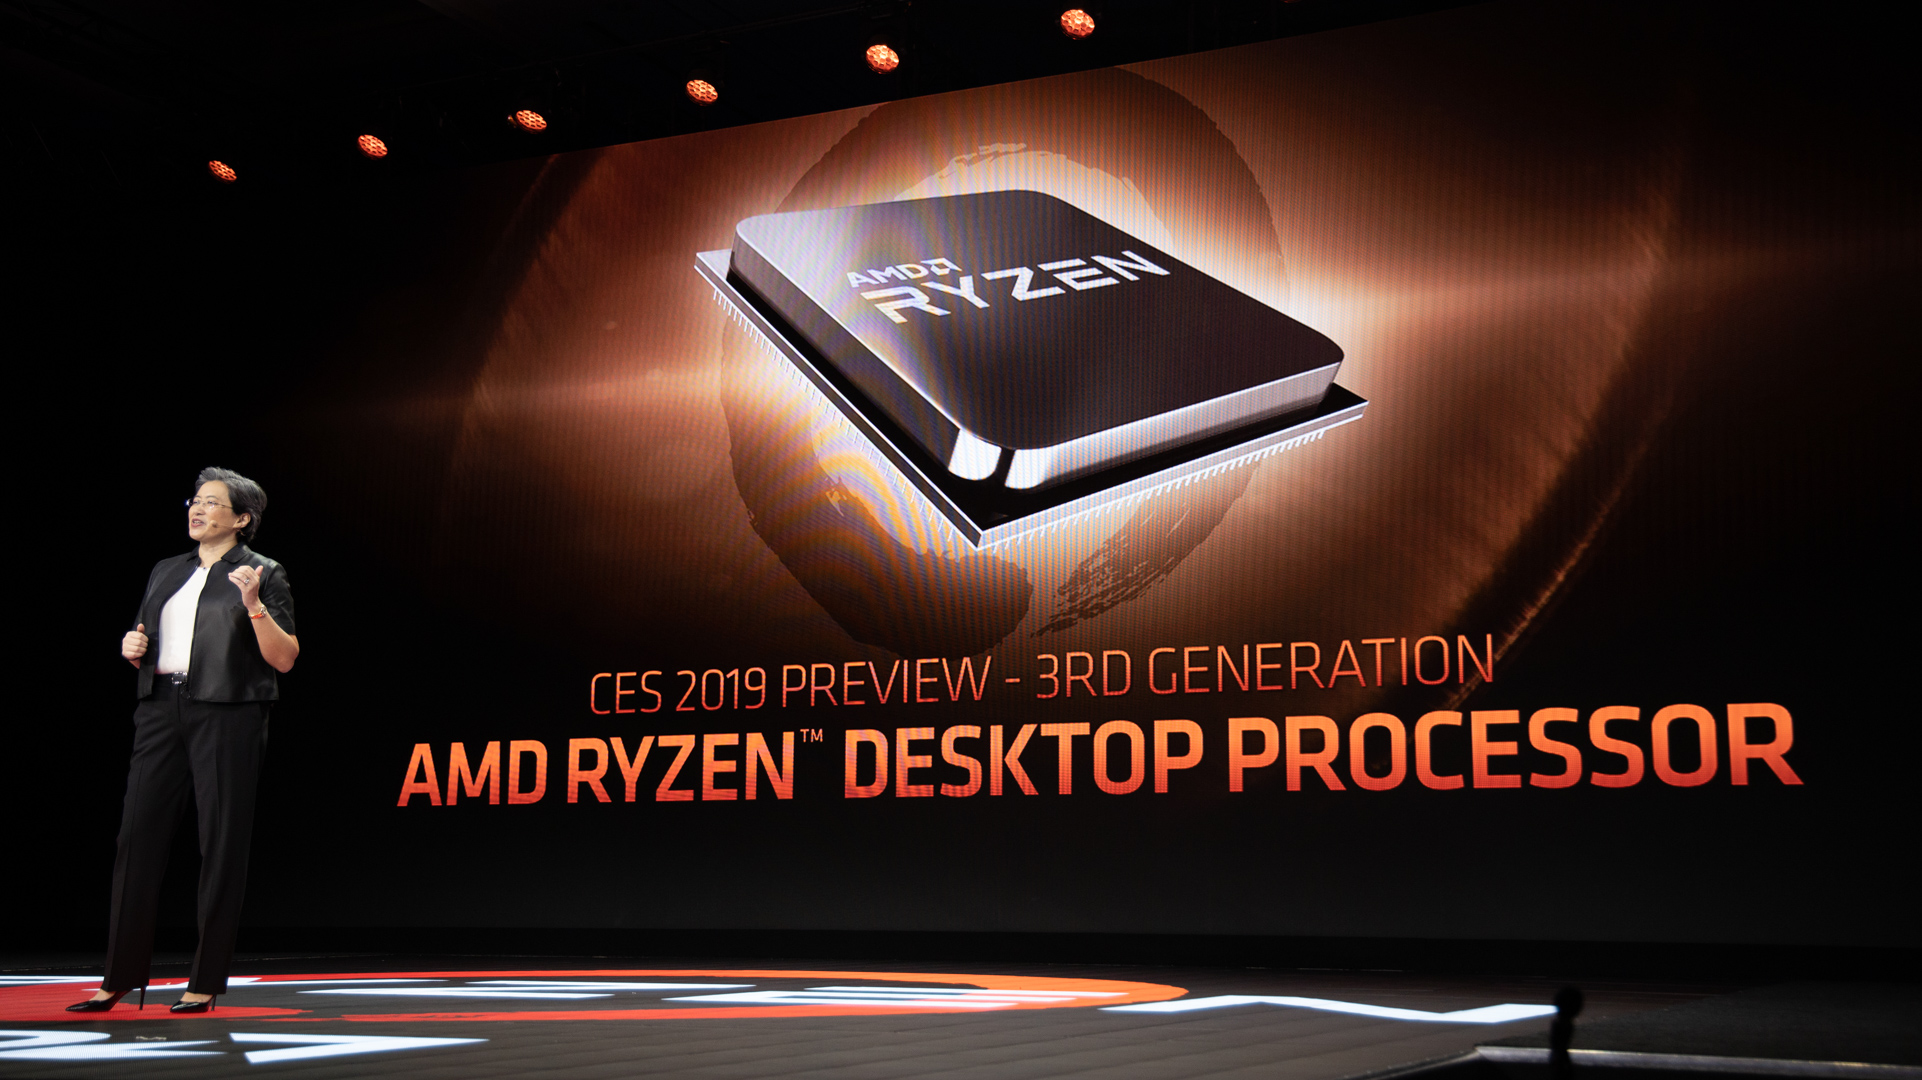 Hybrid processors at CES 2019 are the future of computing